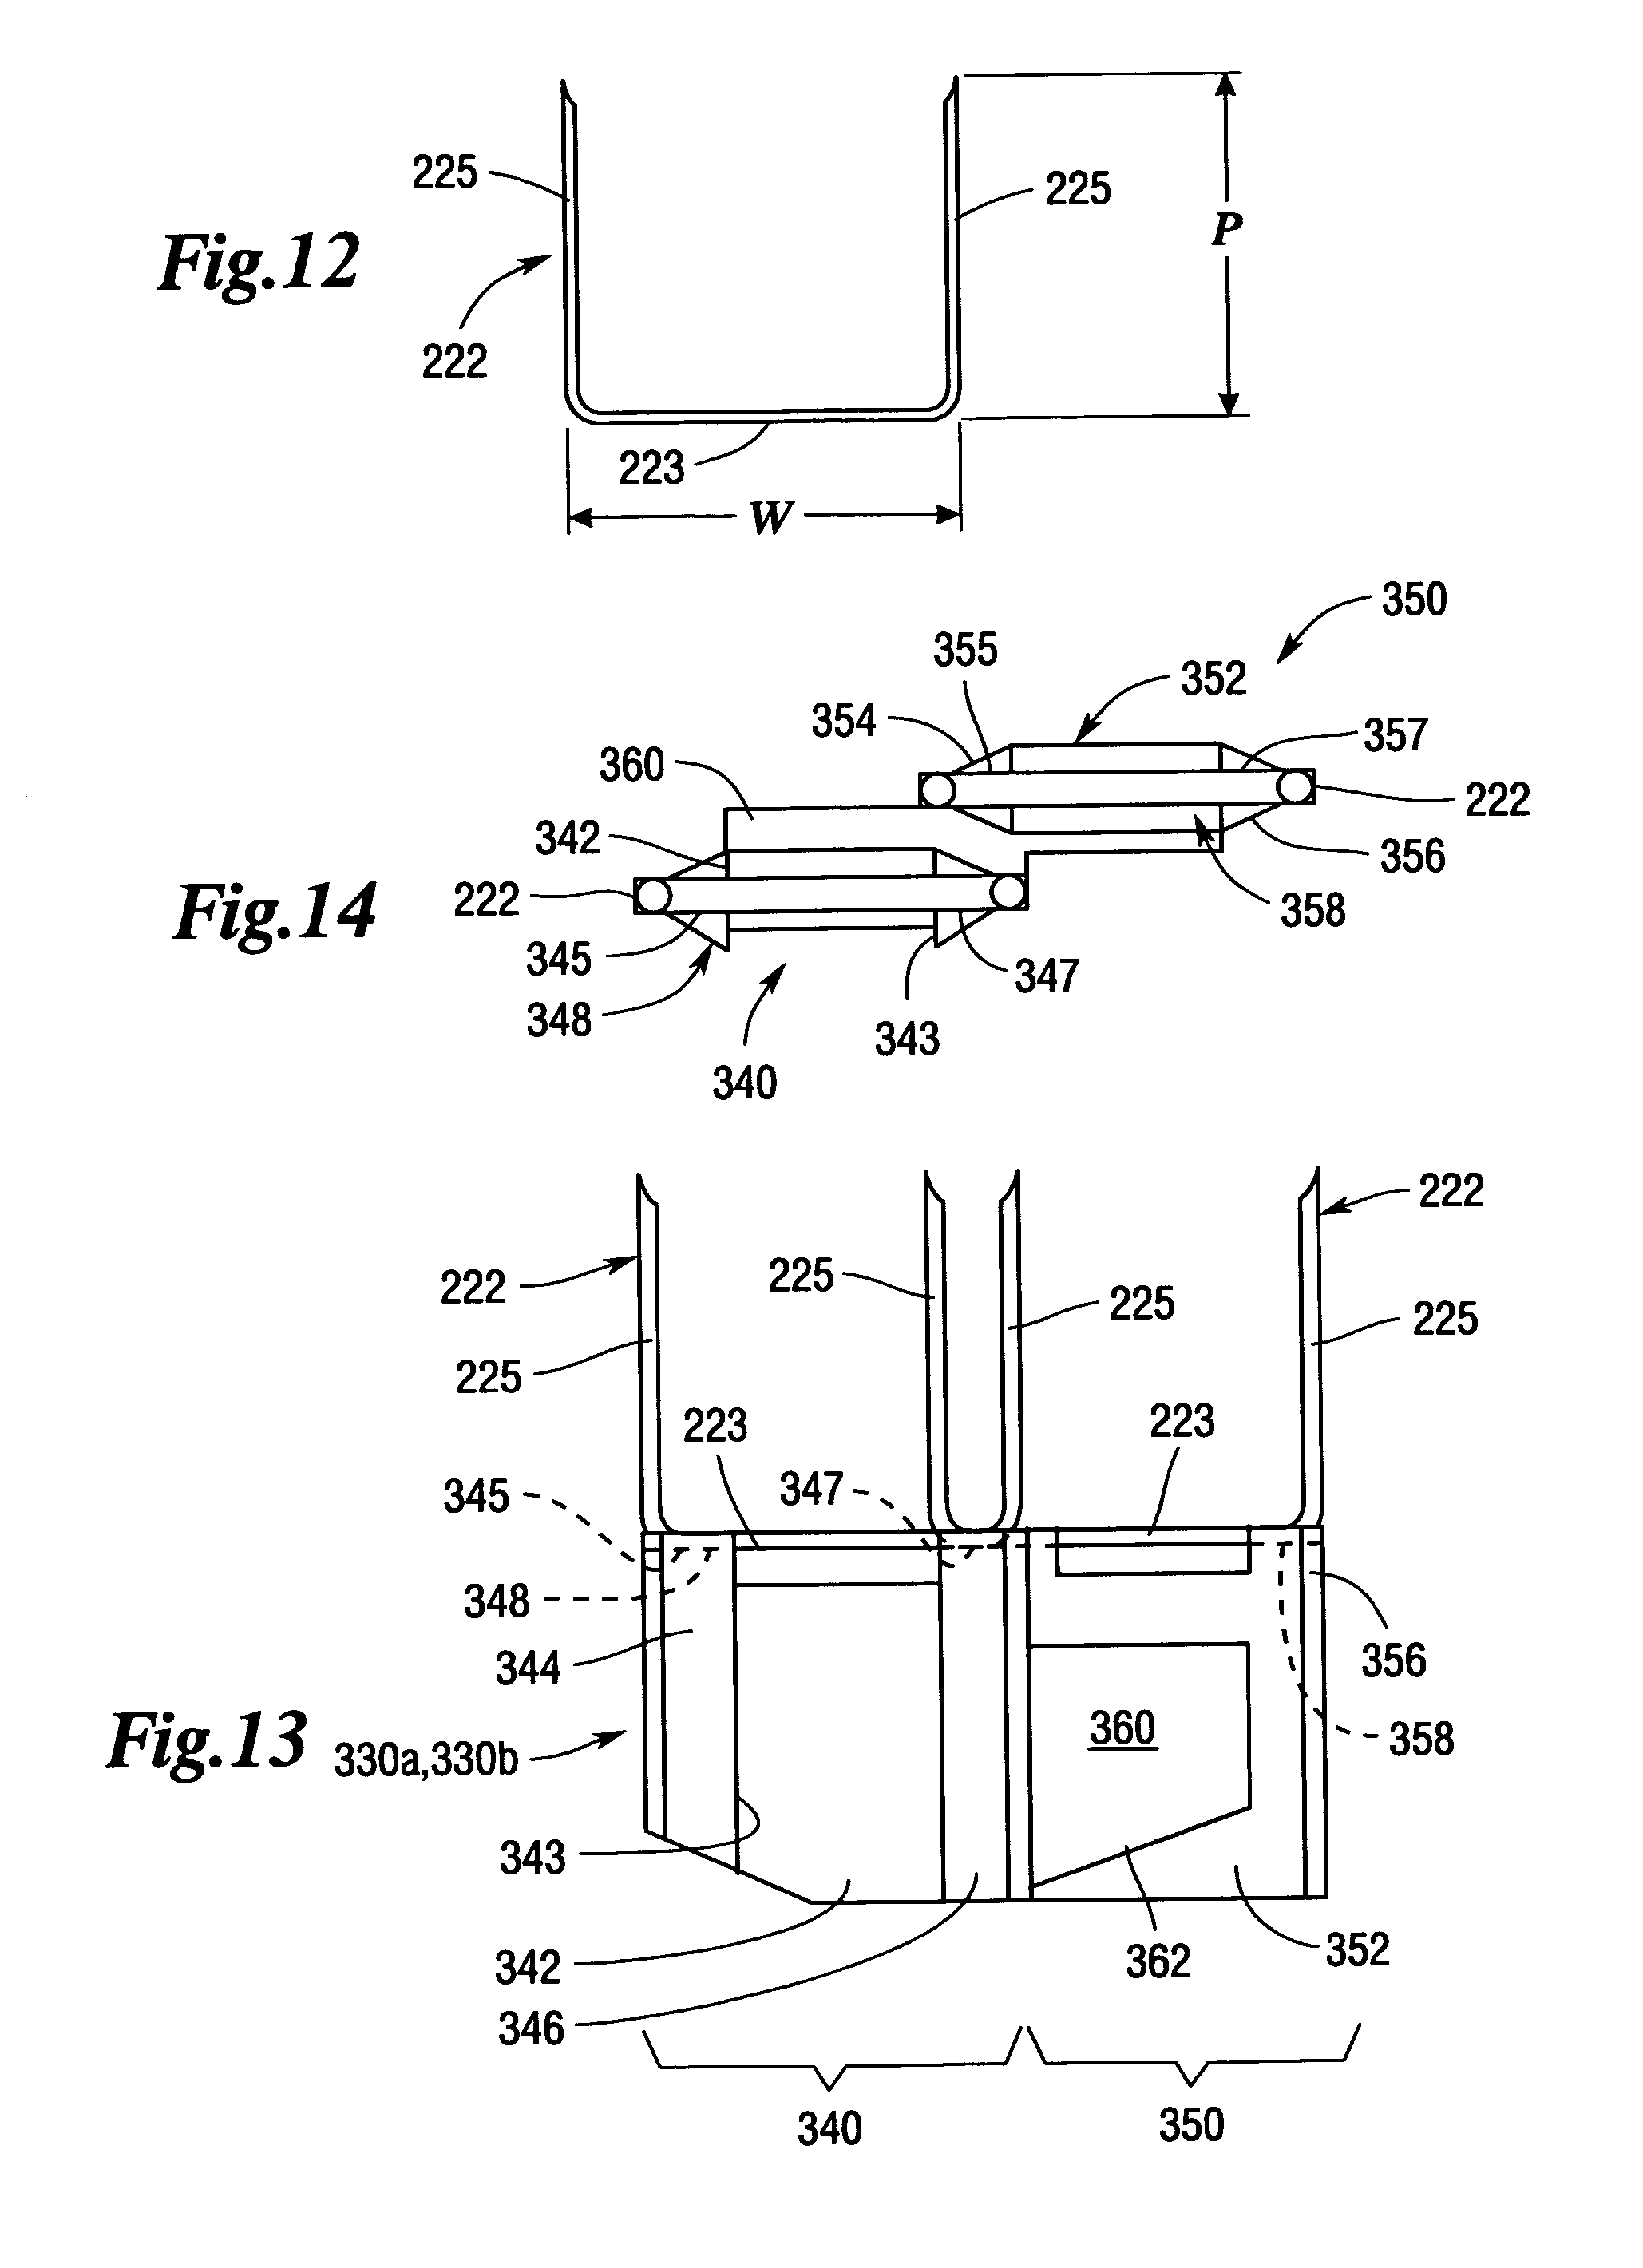 Us7669746b2 Staple Cartridges For Forming Staples Having Differing Disposable Camera Taser Gun Schematics Stun Circuit Formed Heights Google Patents